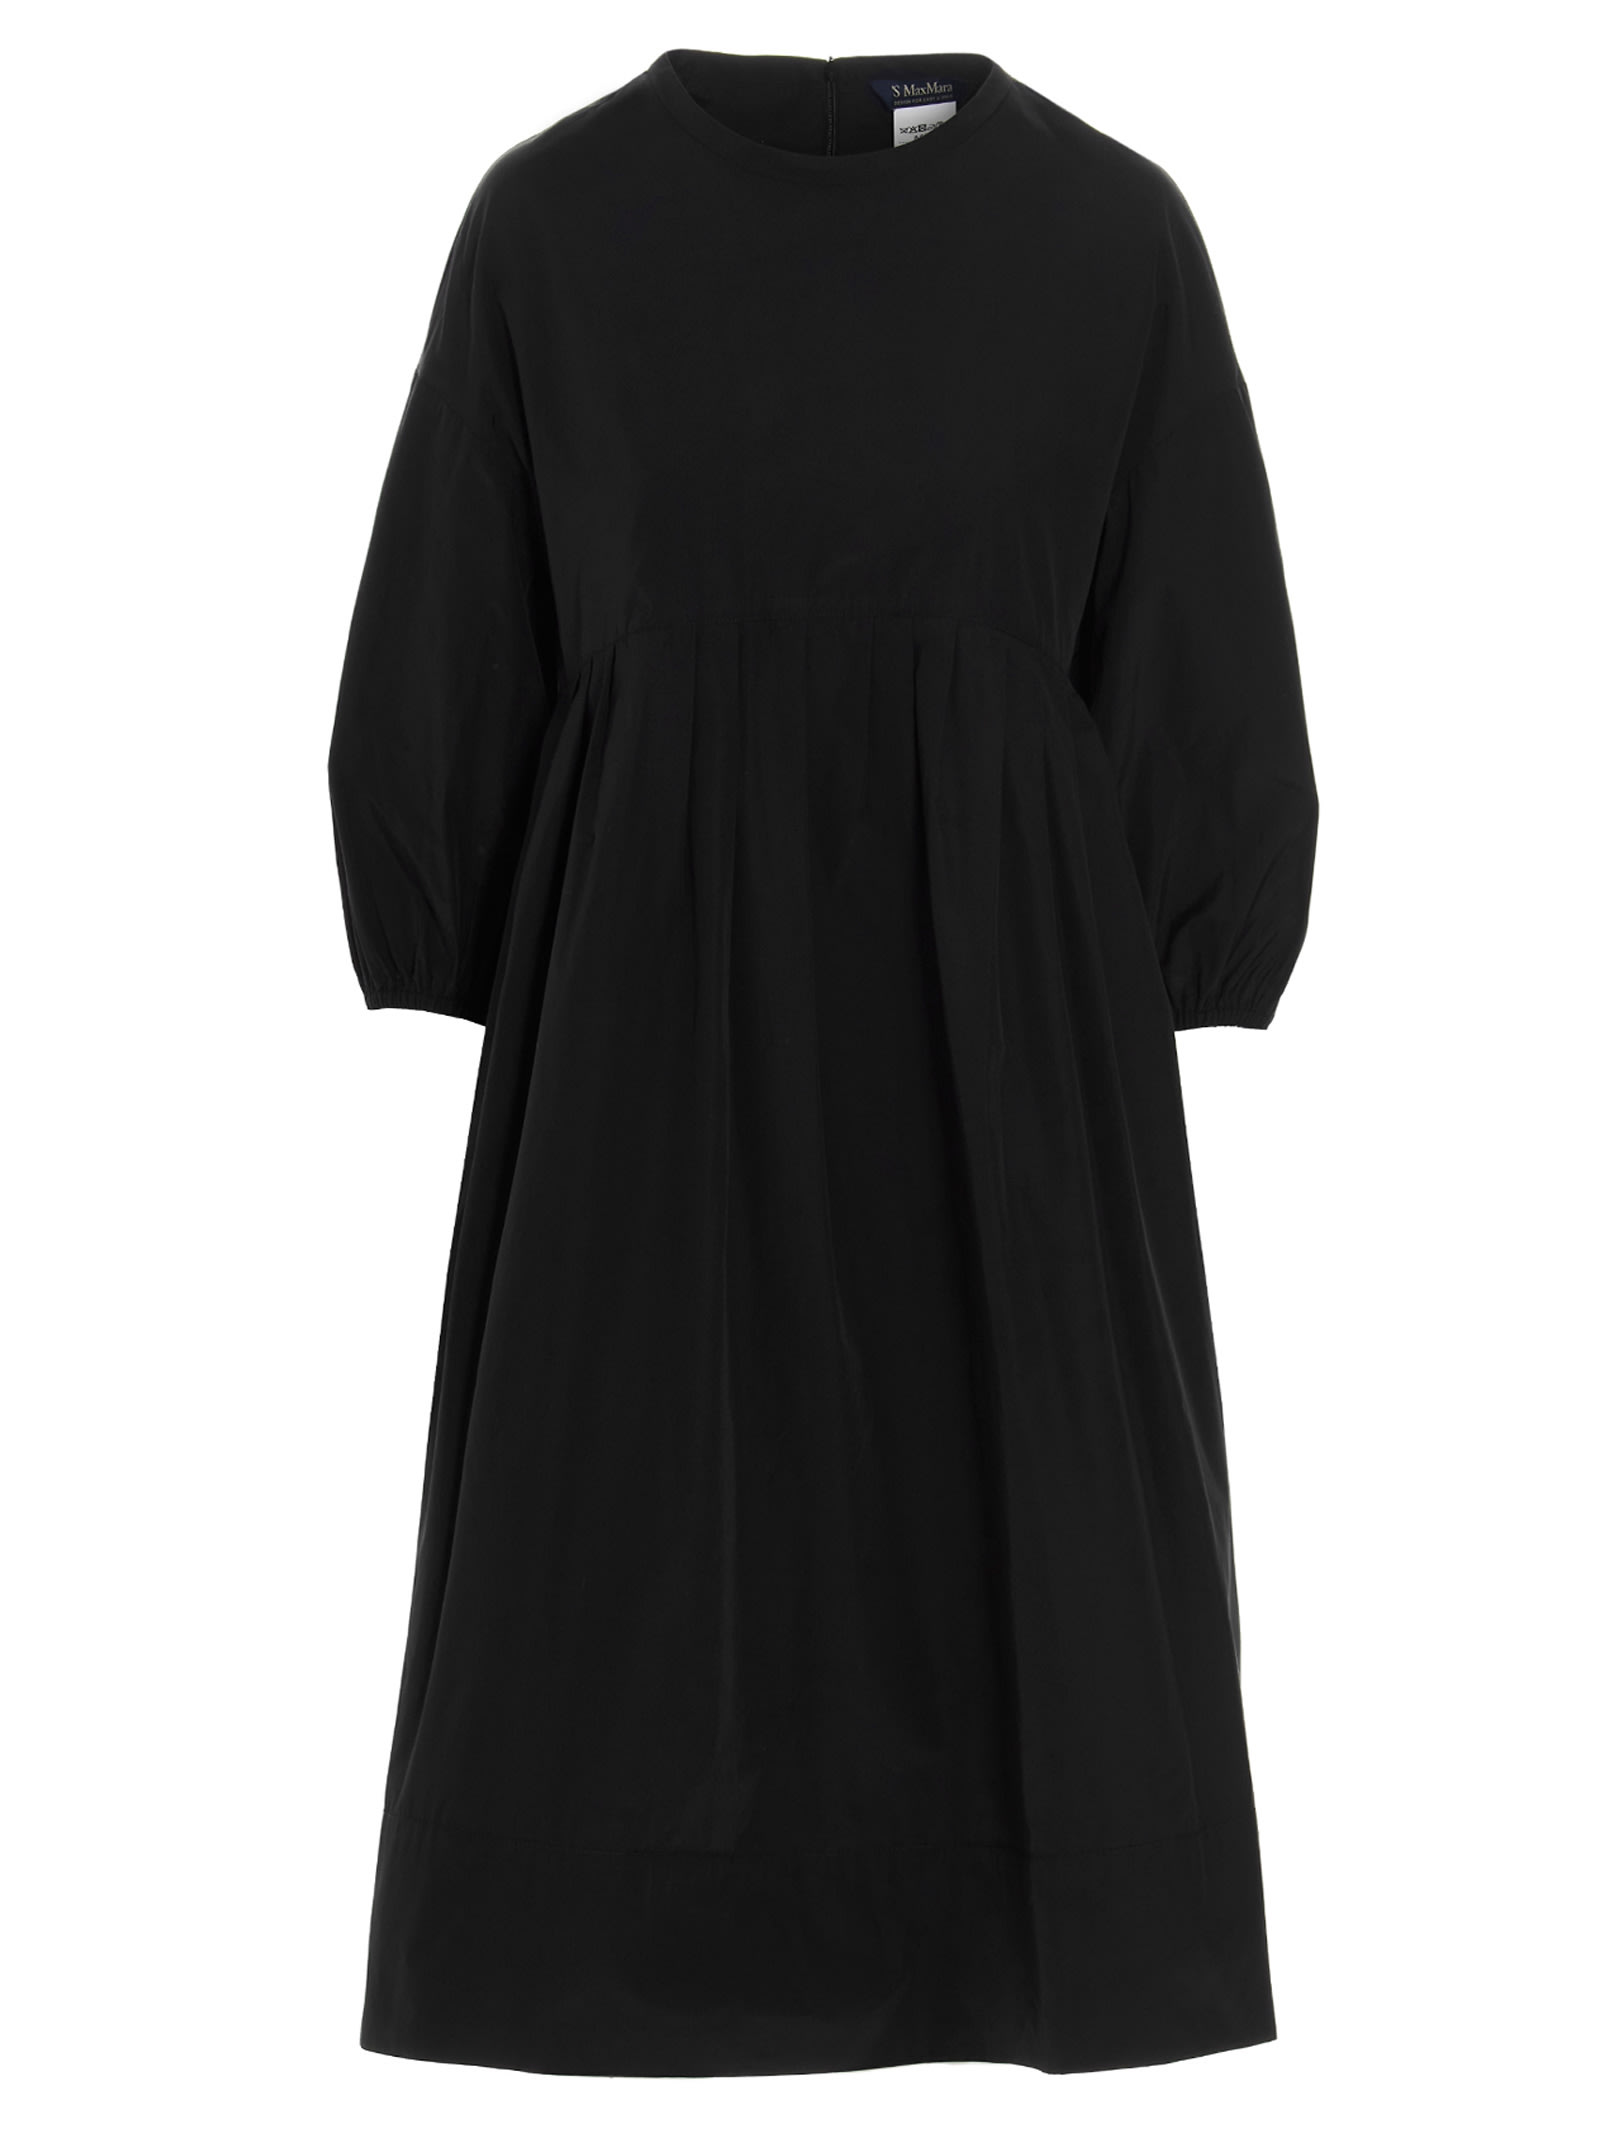 Max Mara Dresses S MAX MARA ESOTICO DRESS